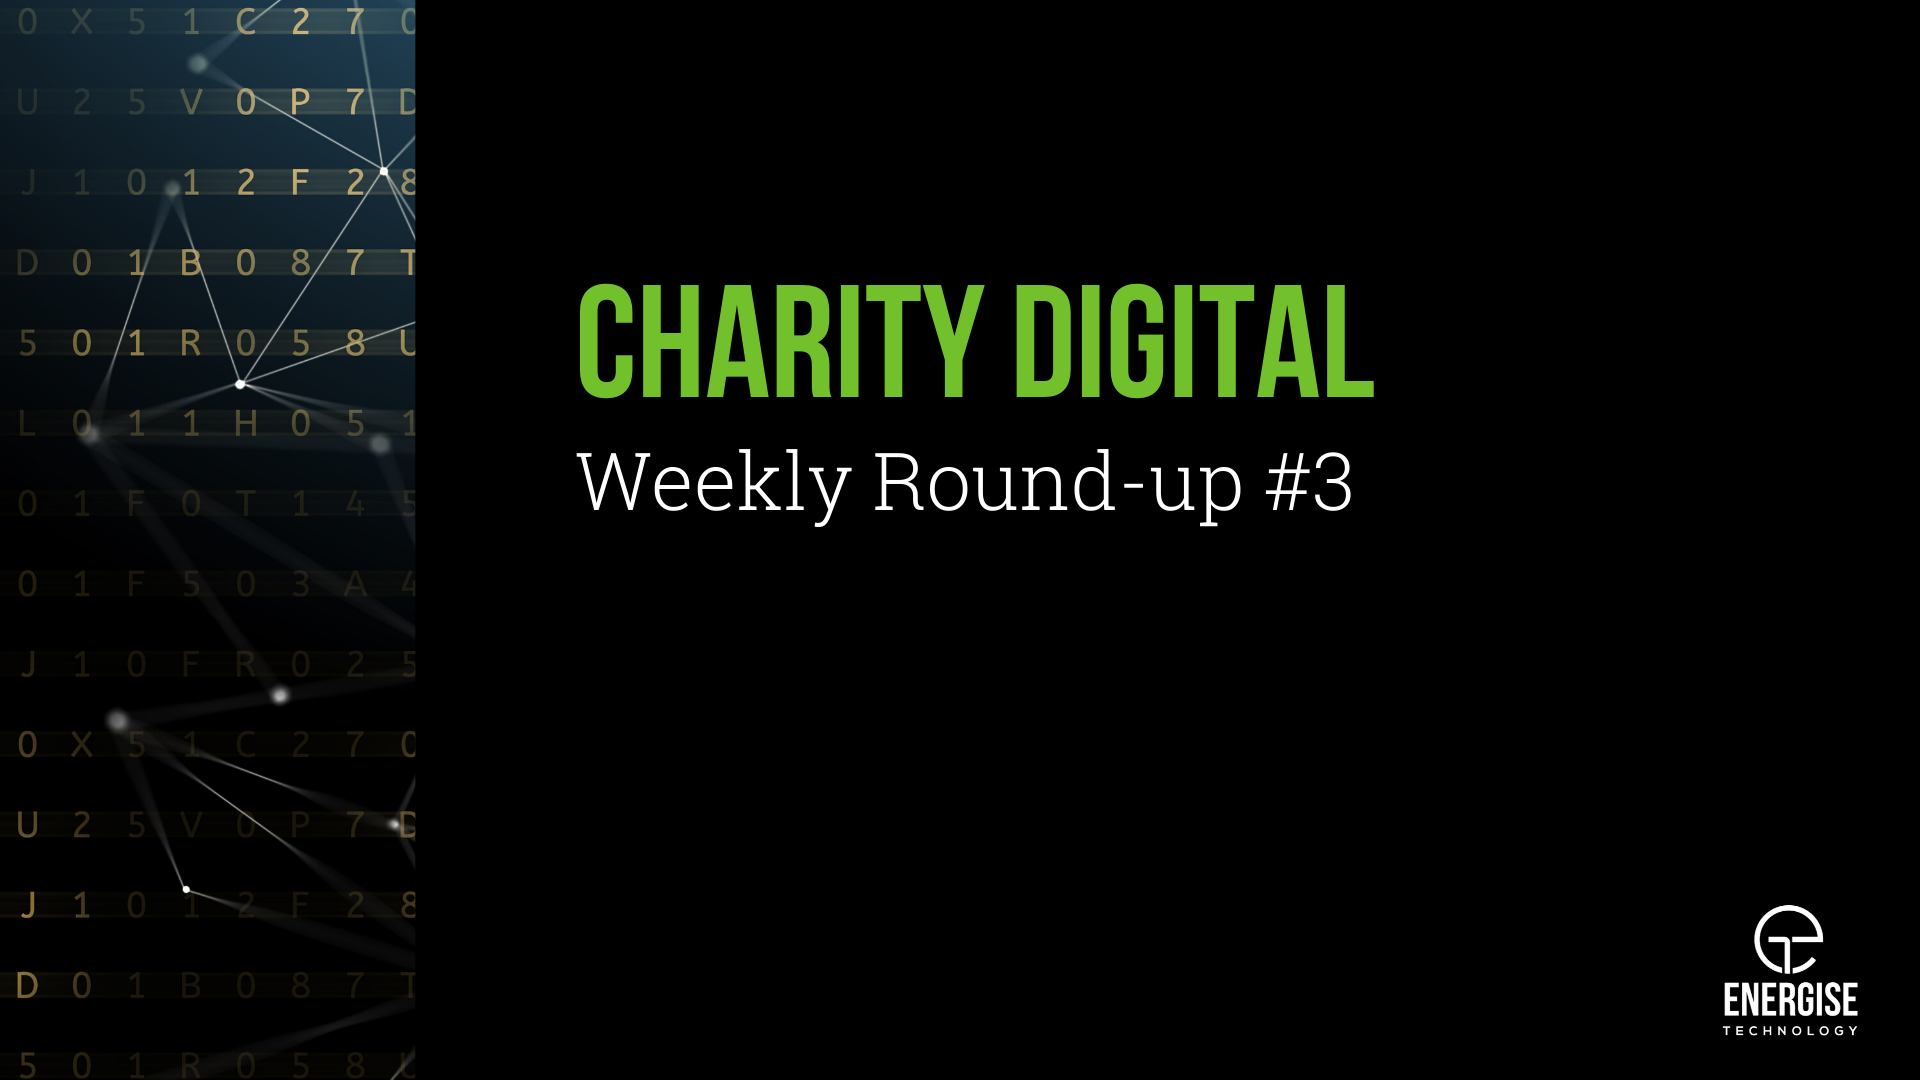 Charity Digital Weekly Roundup #3